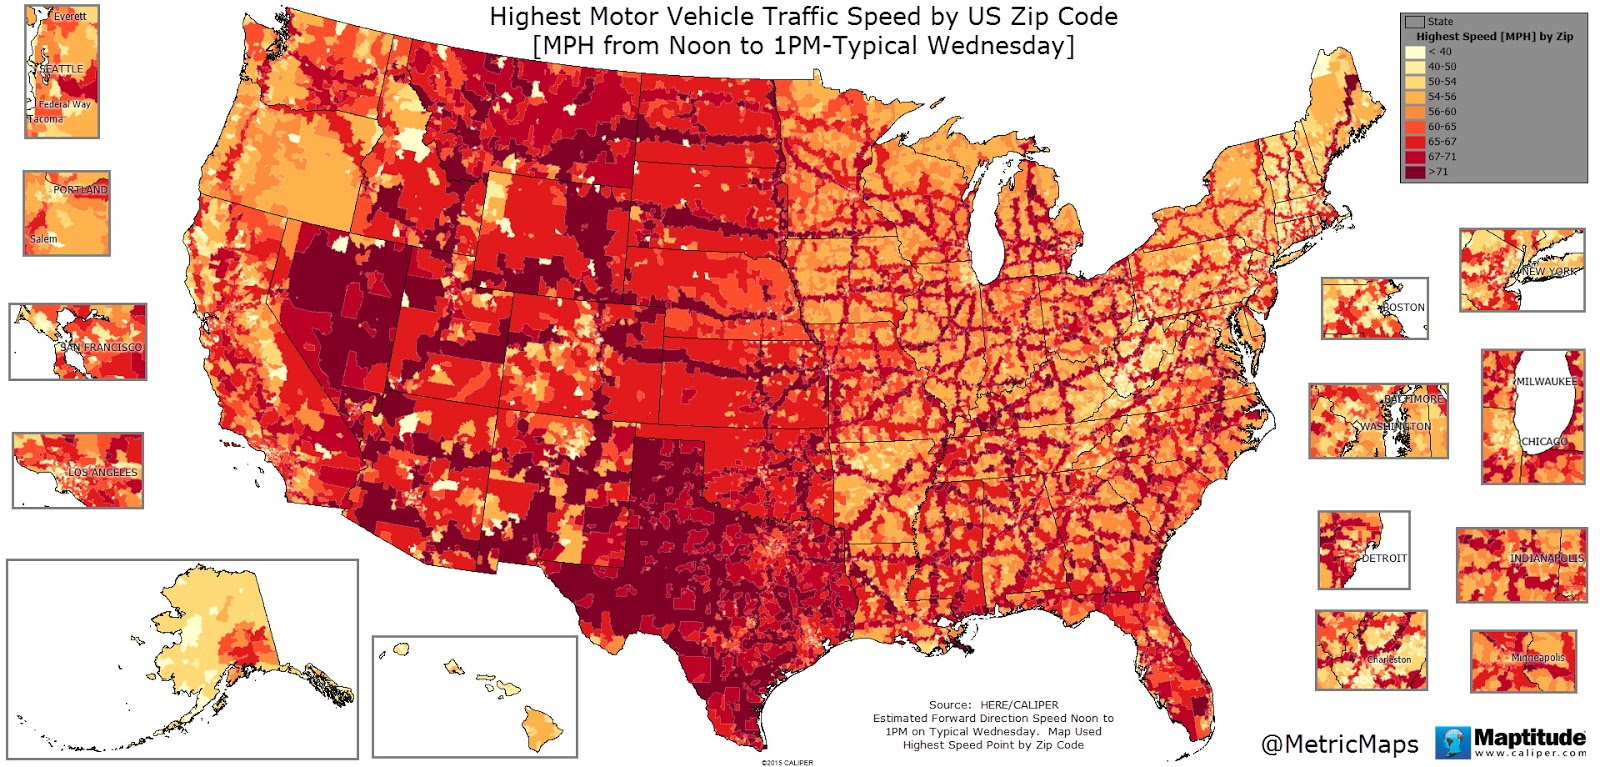 Highest motor vehicle traffic speed by U.S. zip code